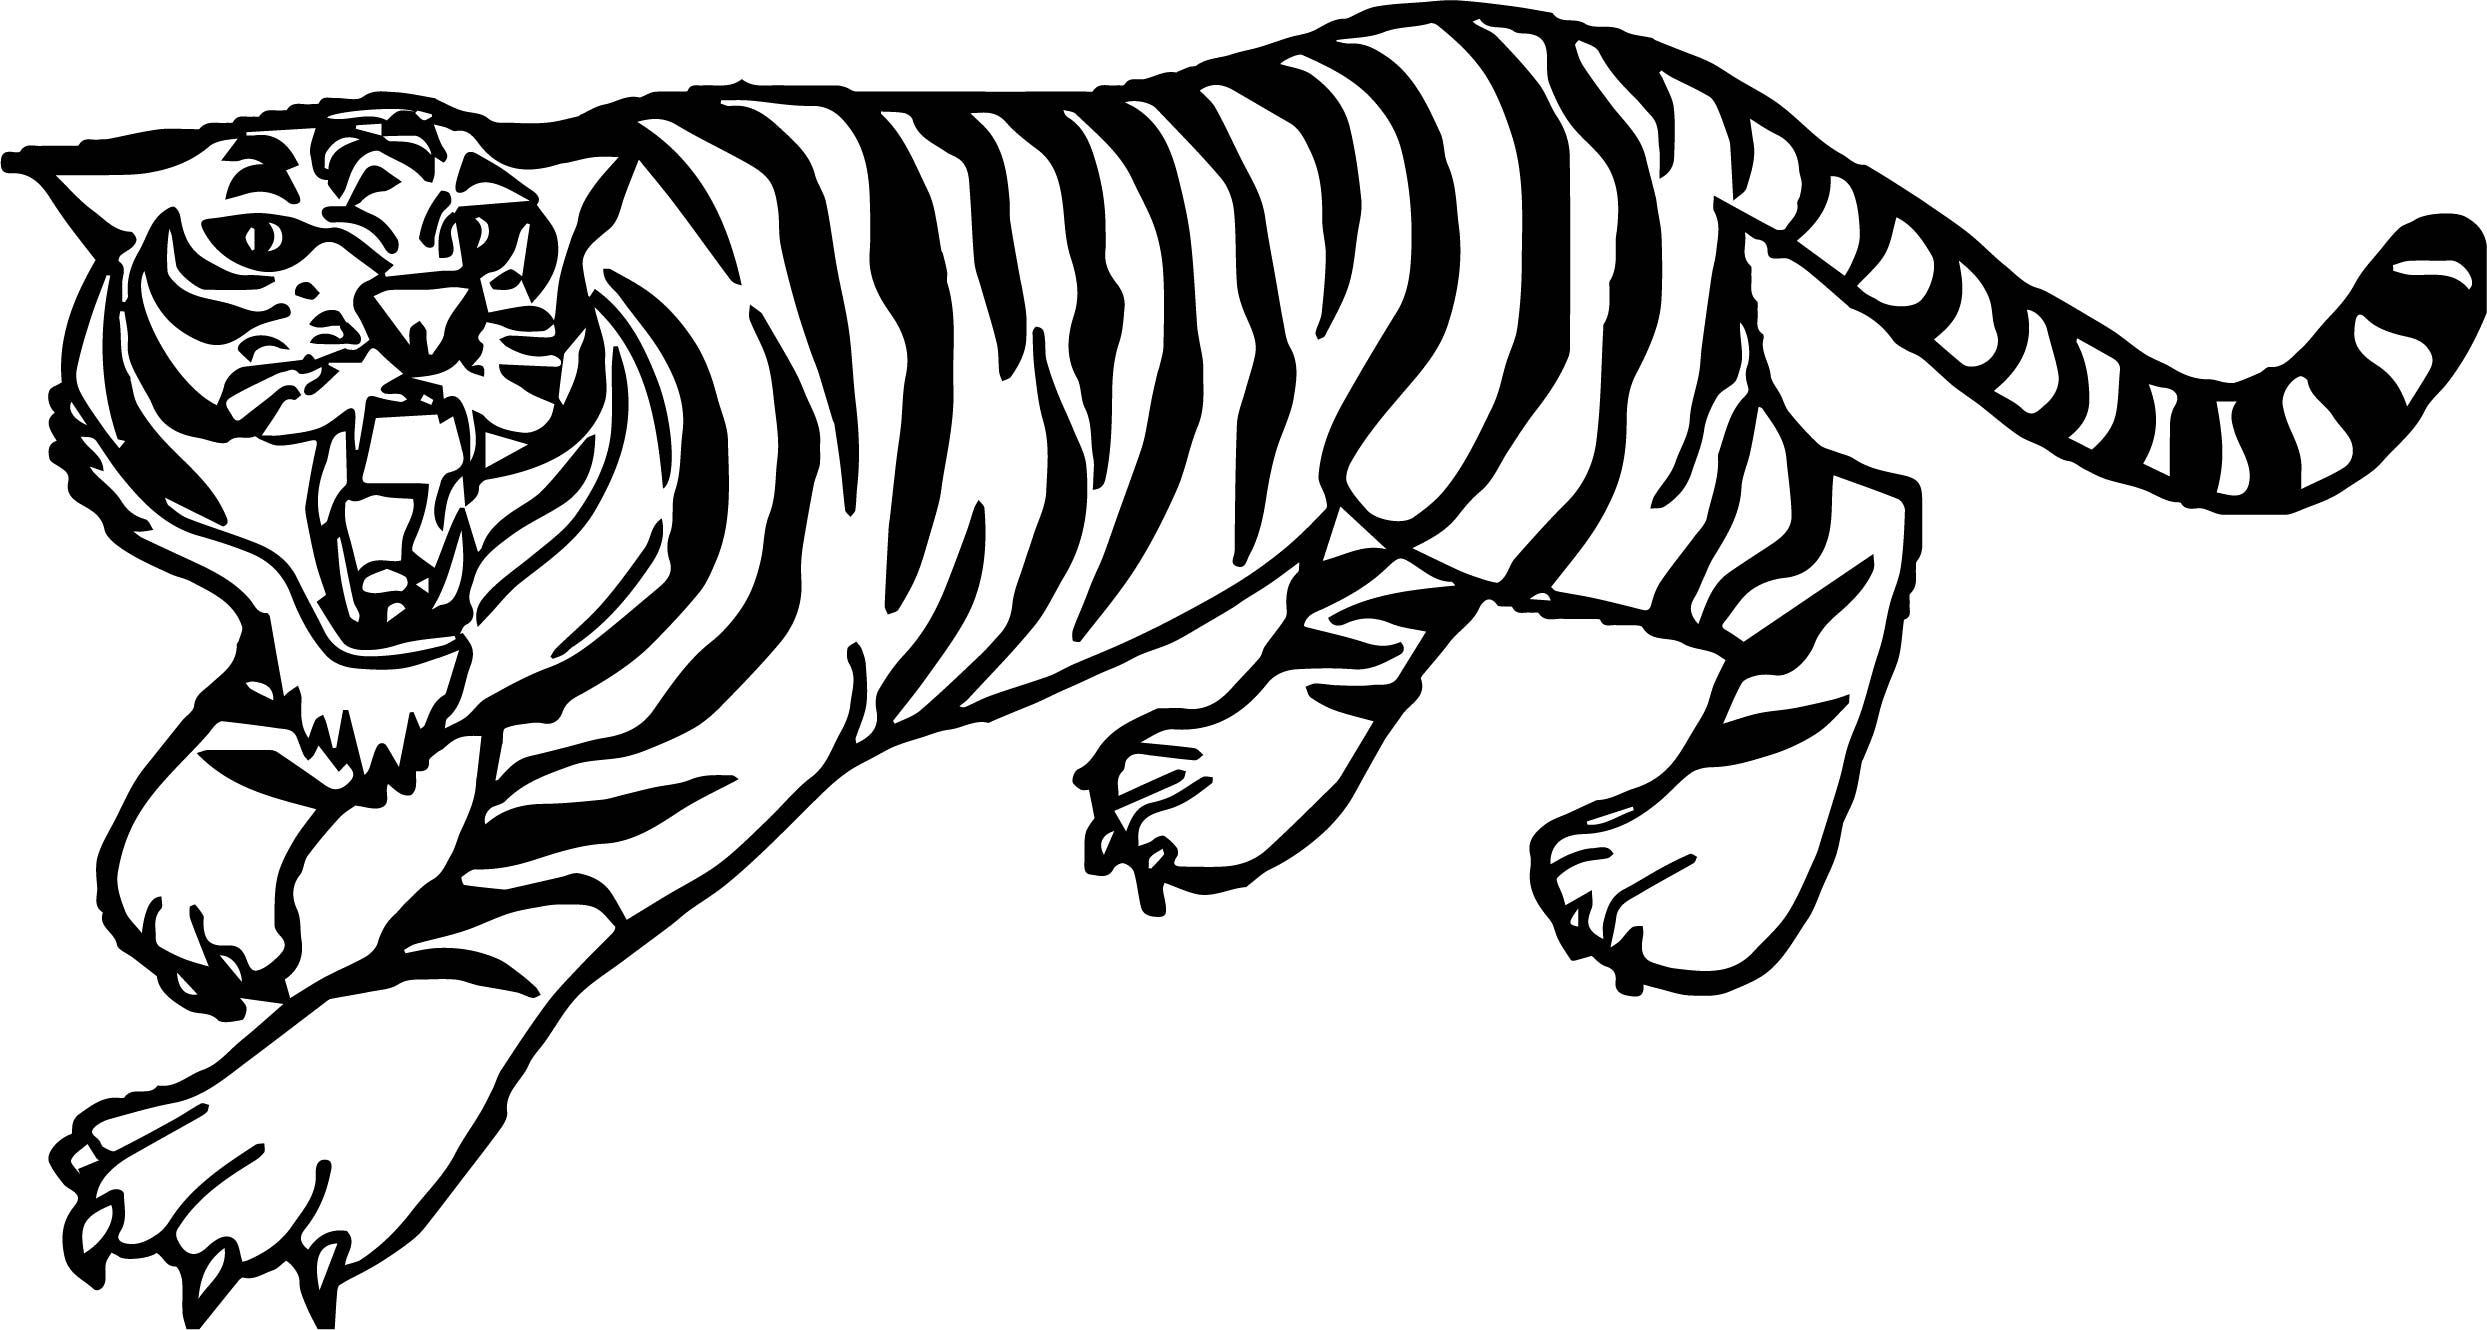 Cool Tiger Yell Coloring Page Tiger Coloring Pages Animal Coloring Pages Mandala Coloring Pages